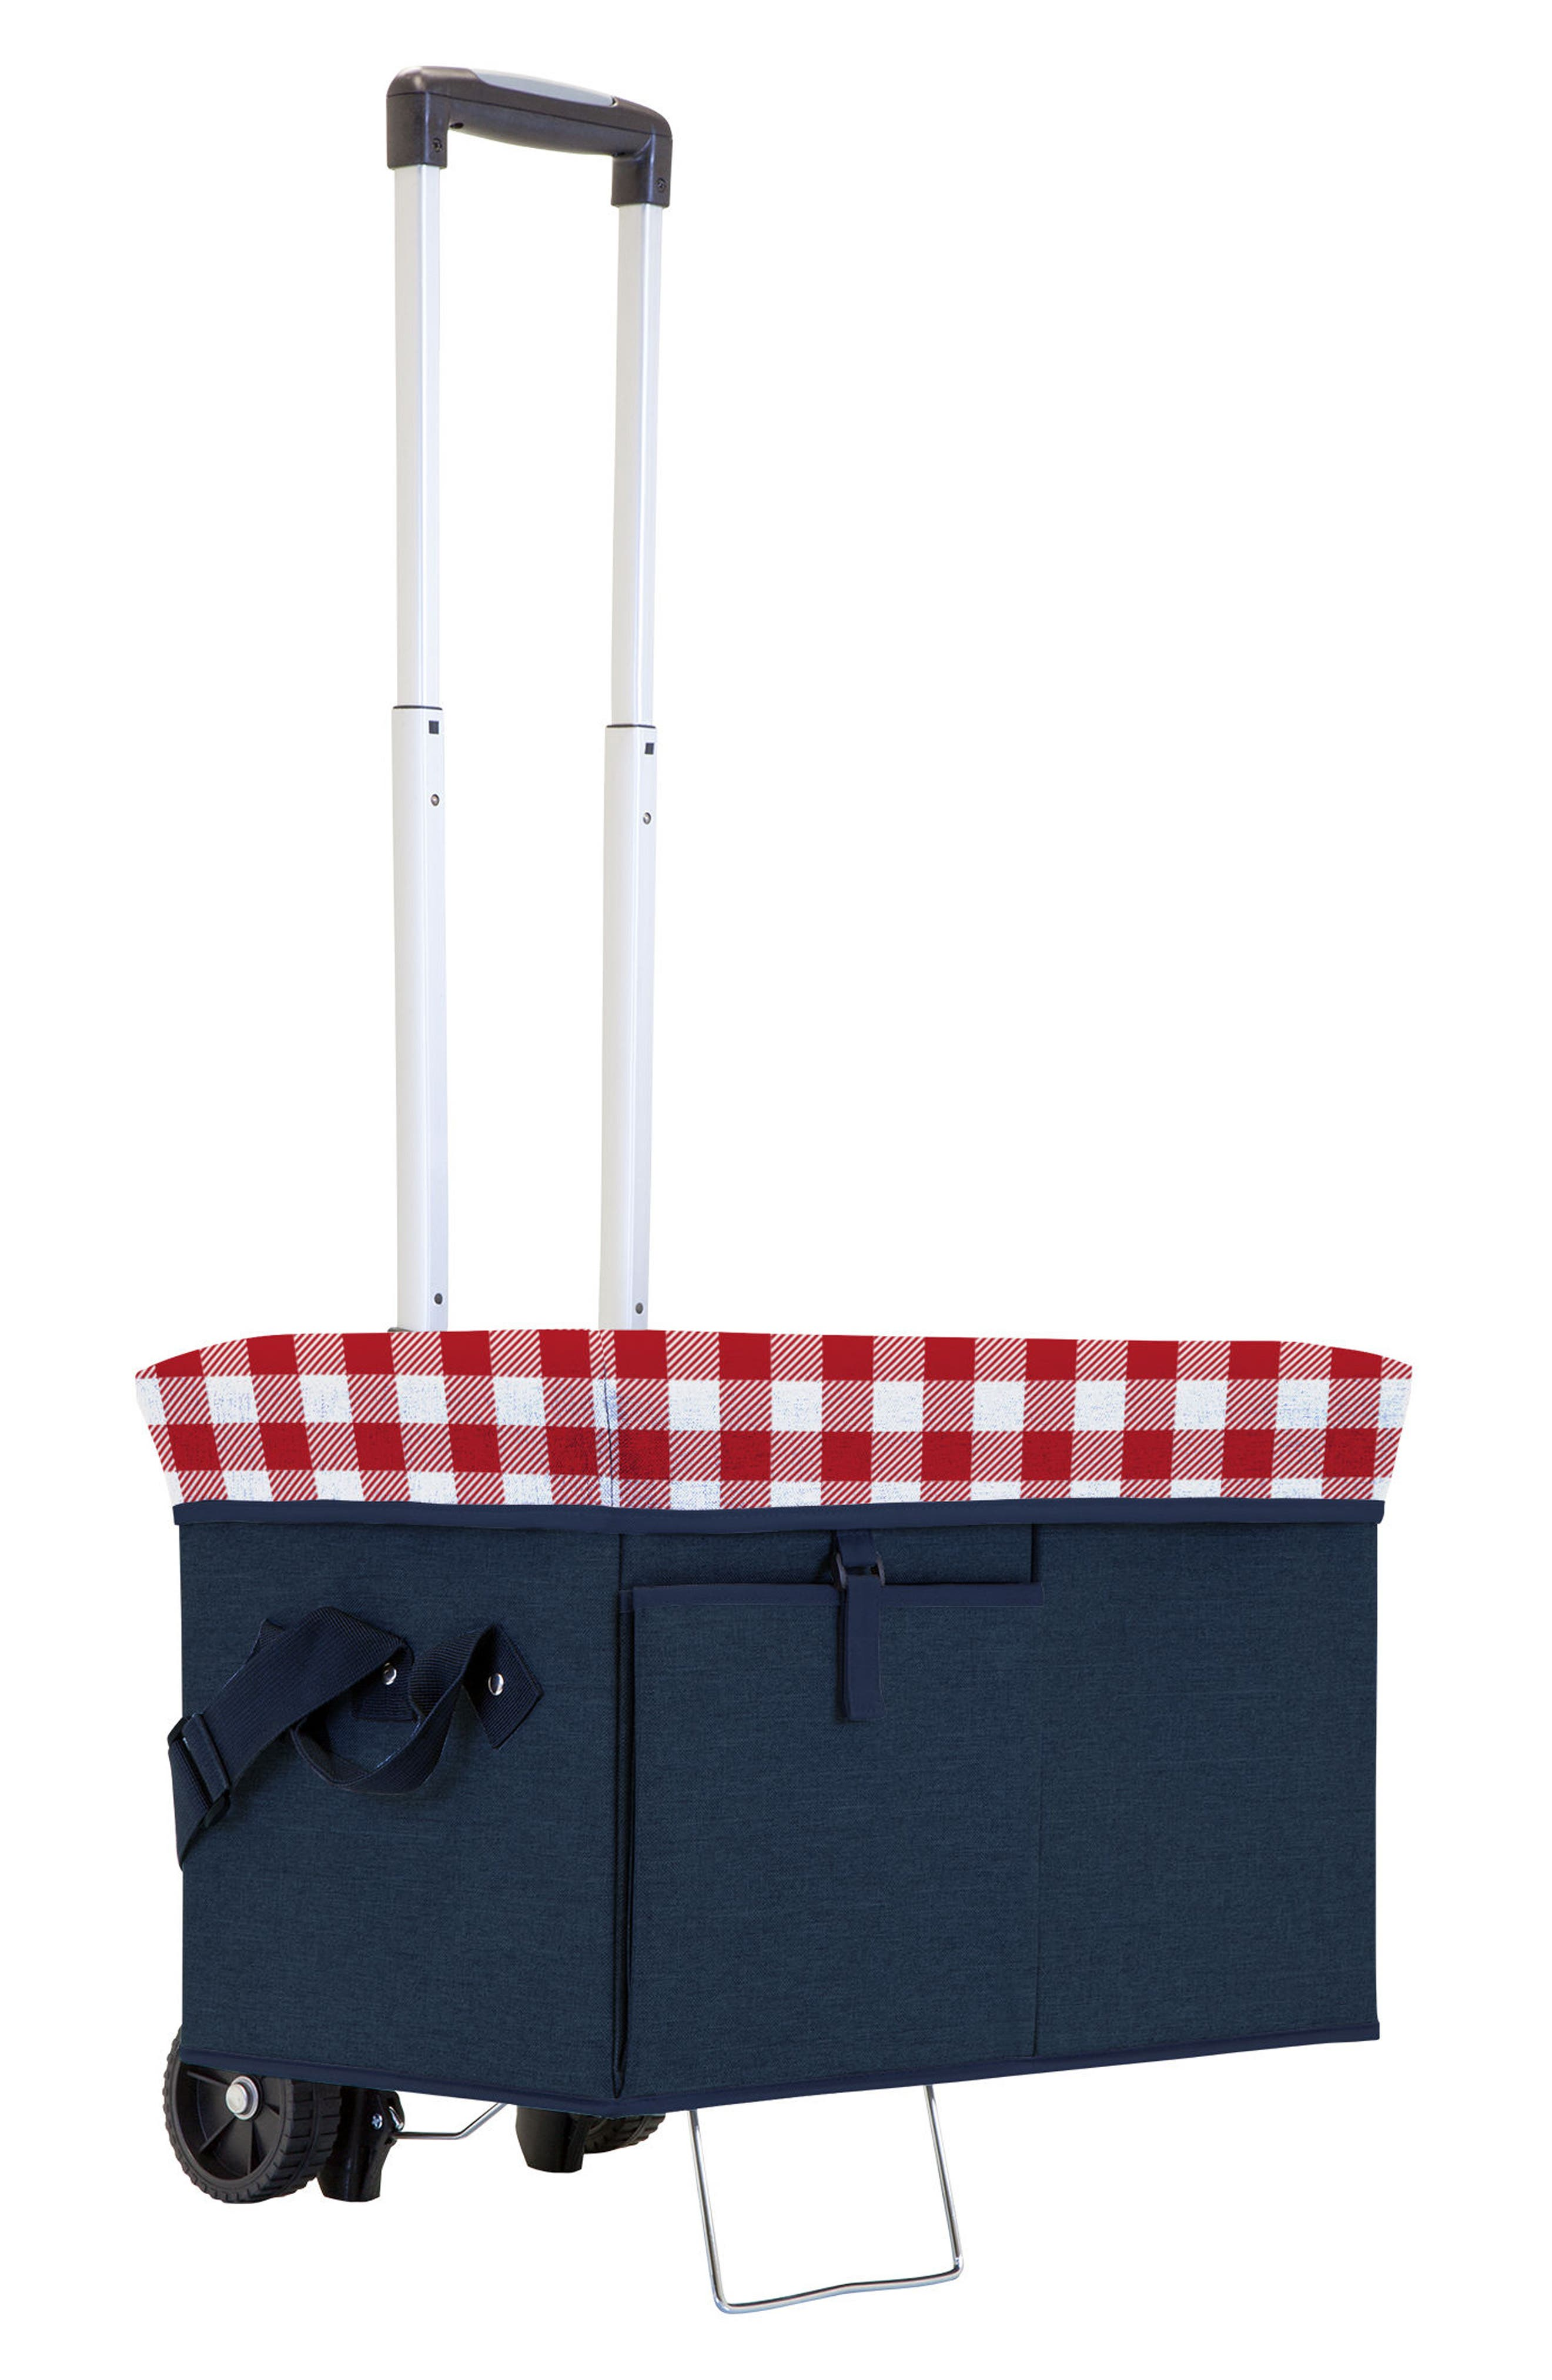 Picnic Time Ottoman Cooler with Trolley,                             Main thumbnail 1, color,                             410